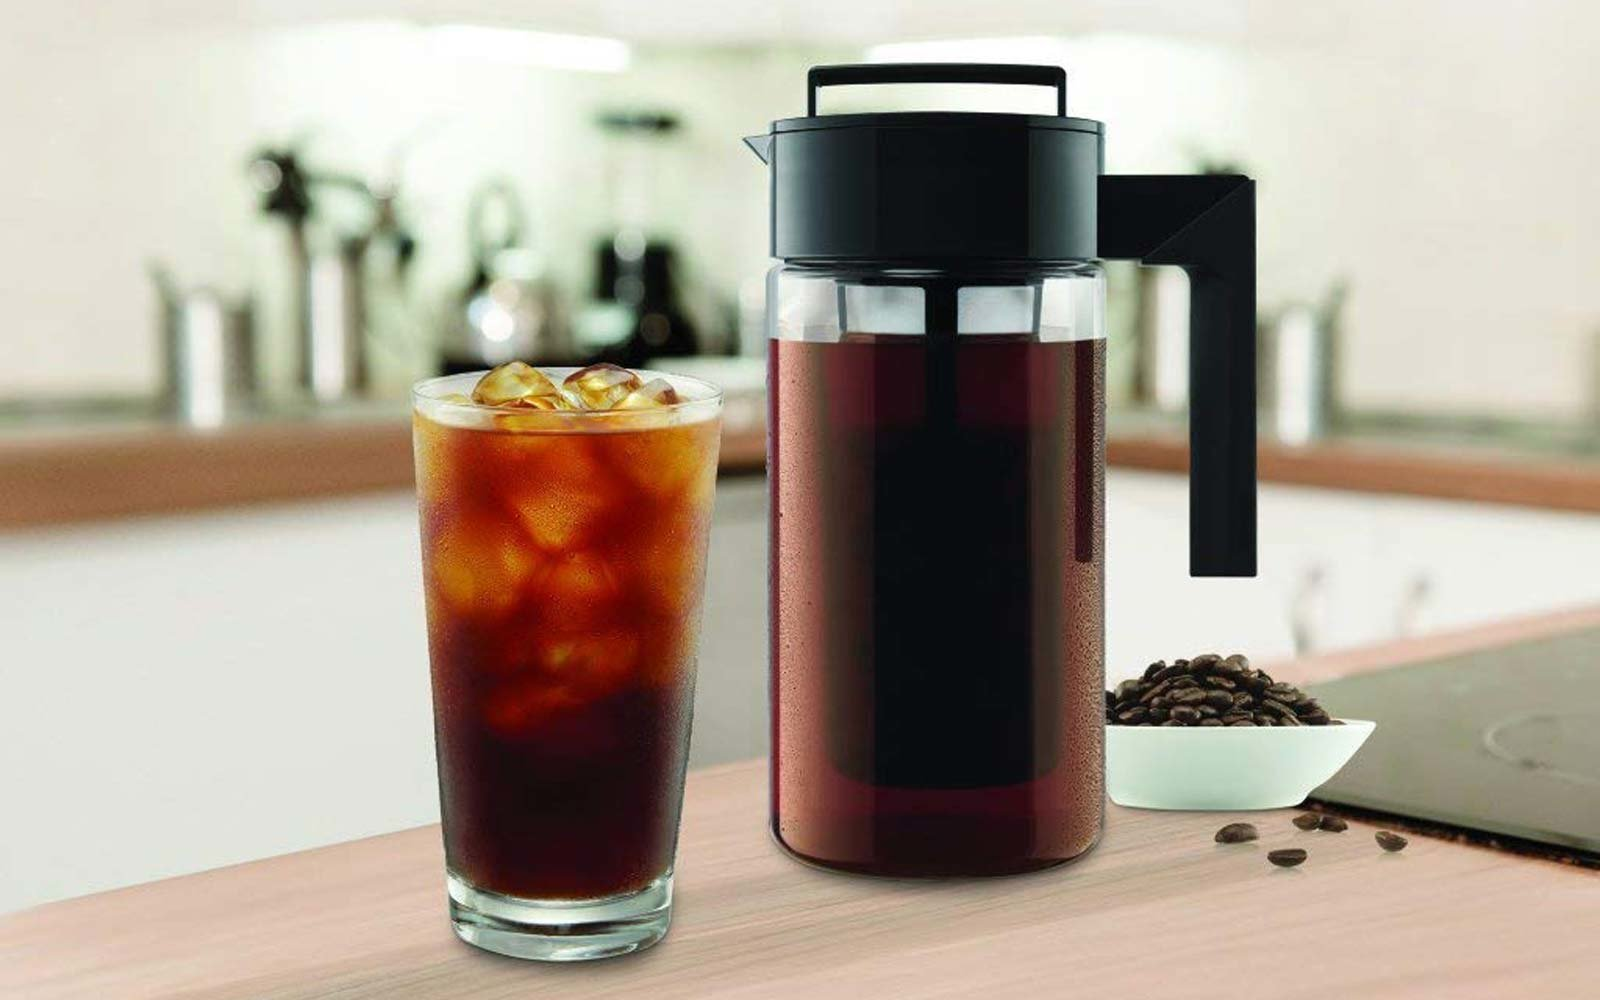 This Cold Brew Coffee Maker Has Over 1,800 5-star Reviews on Amazon — and It's Only $25